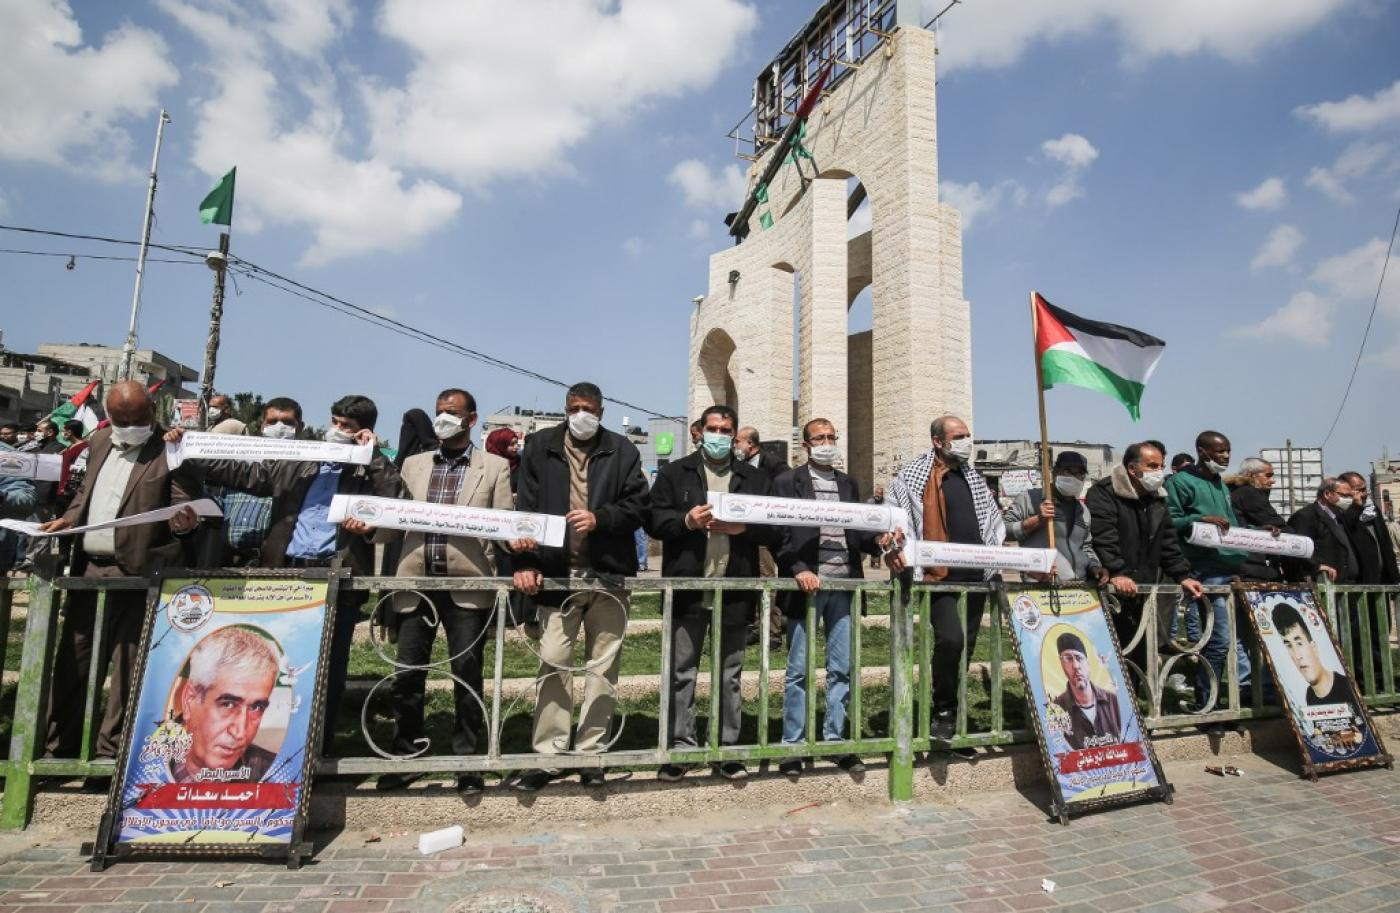 Palestinians protesting in solidarity with prisoners